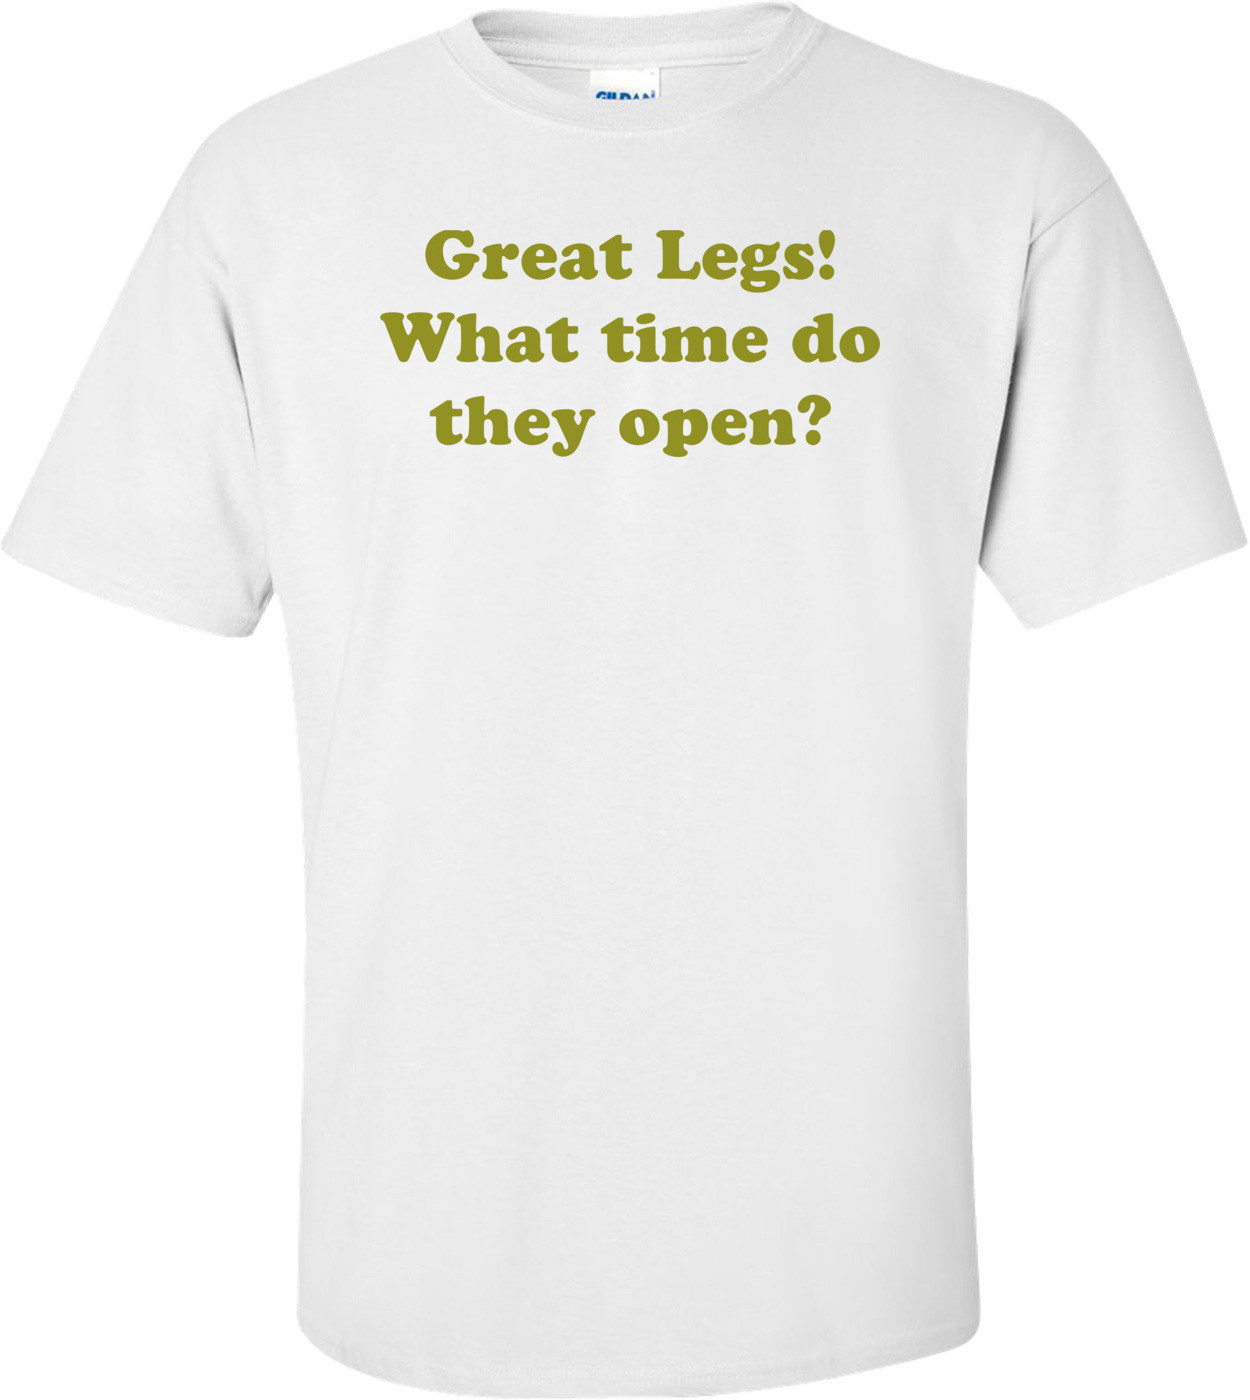 Great Legs! What time do they open? Shirt